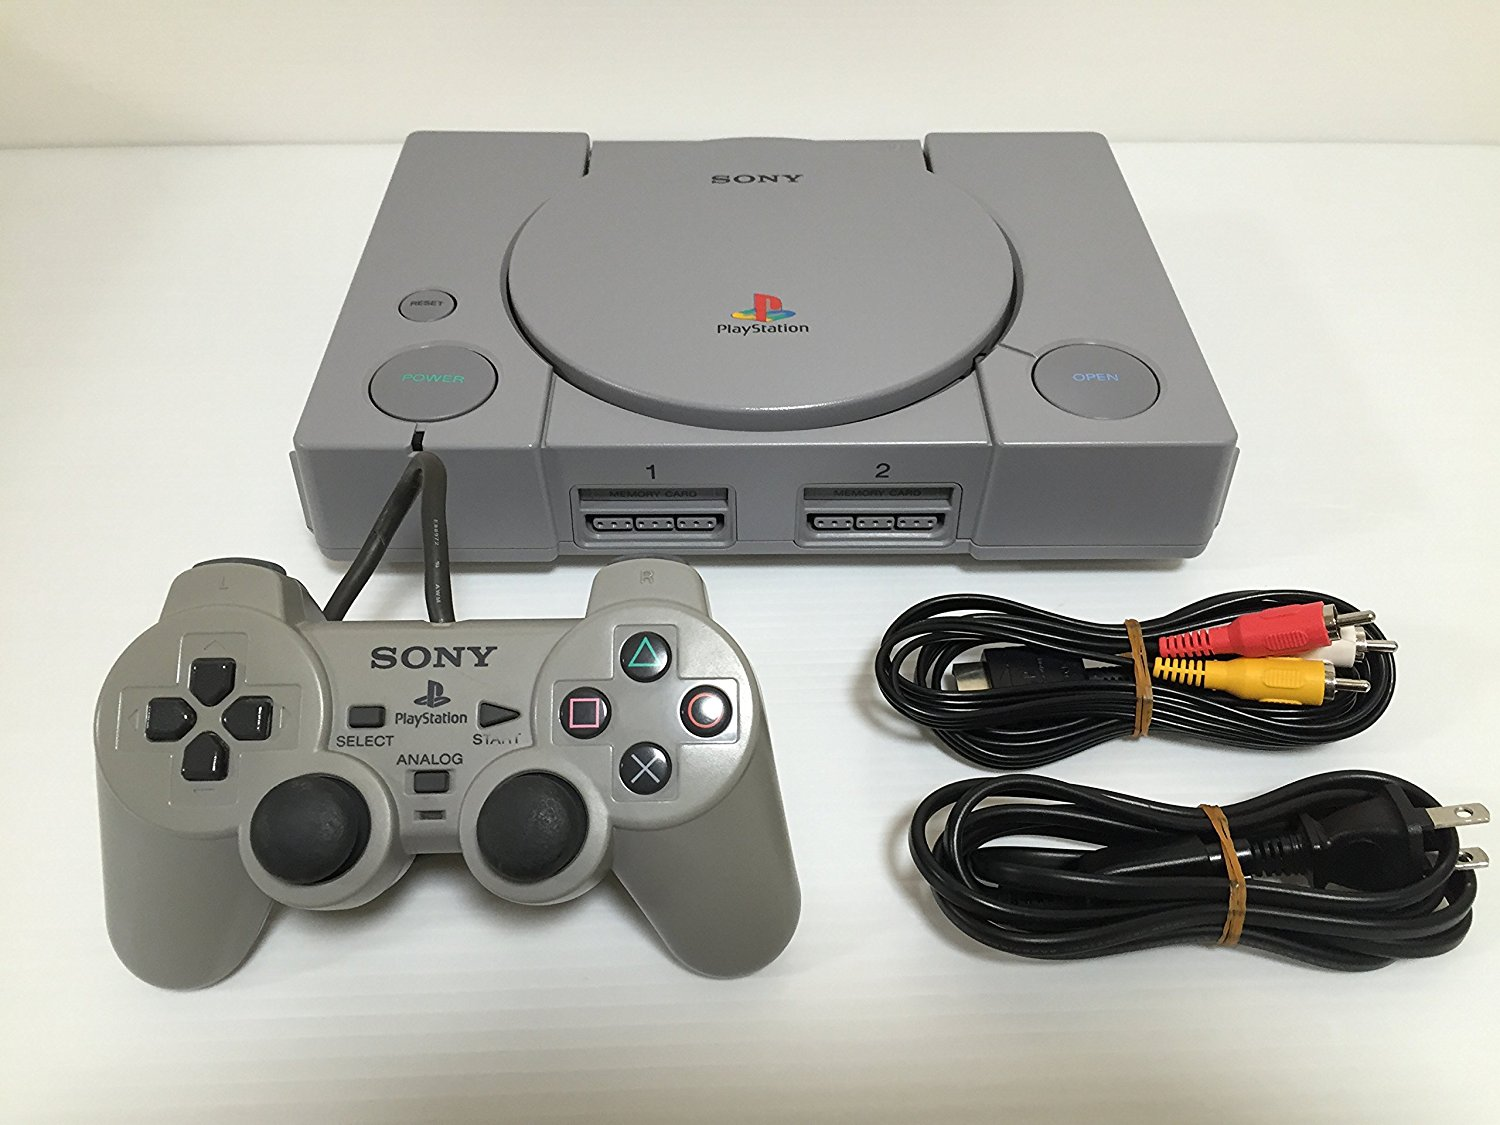 PS 7500 SCPH-7500 本体 すぐ遊べるセット PlayStation SONY ソニー 中古 4948872075008 送料無料 【中古】